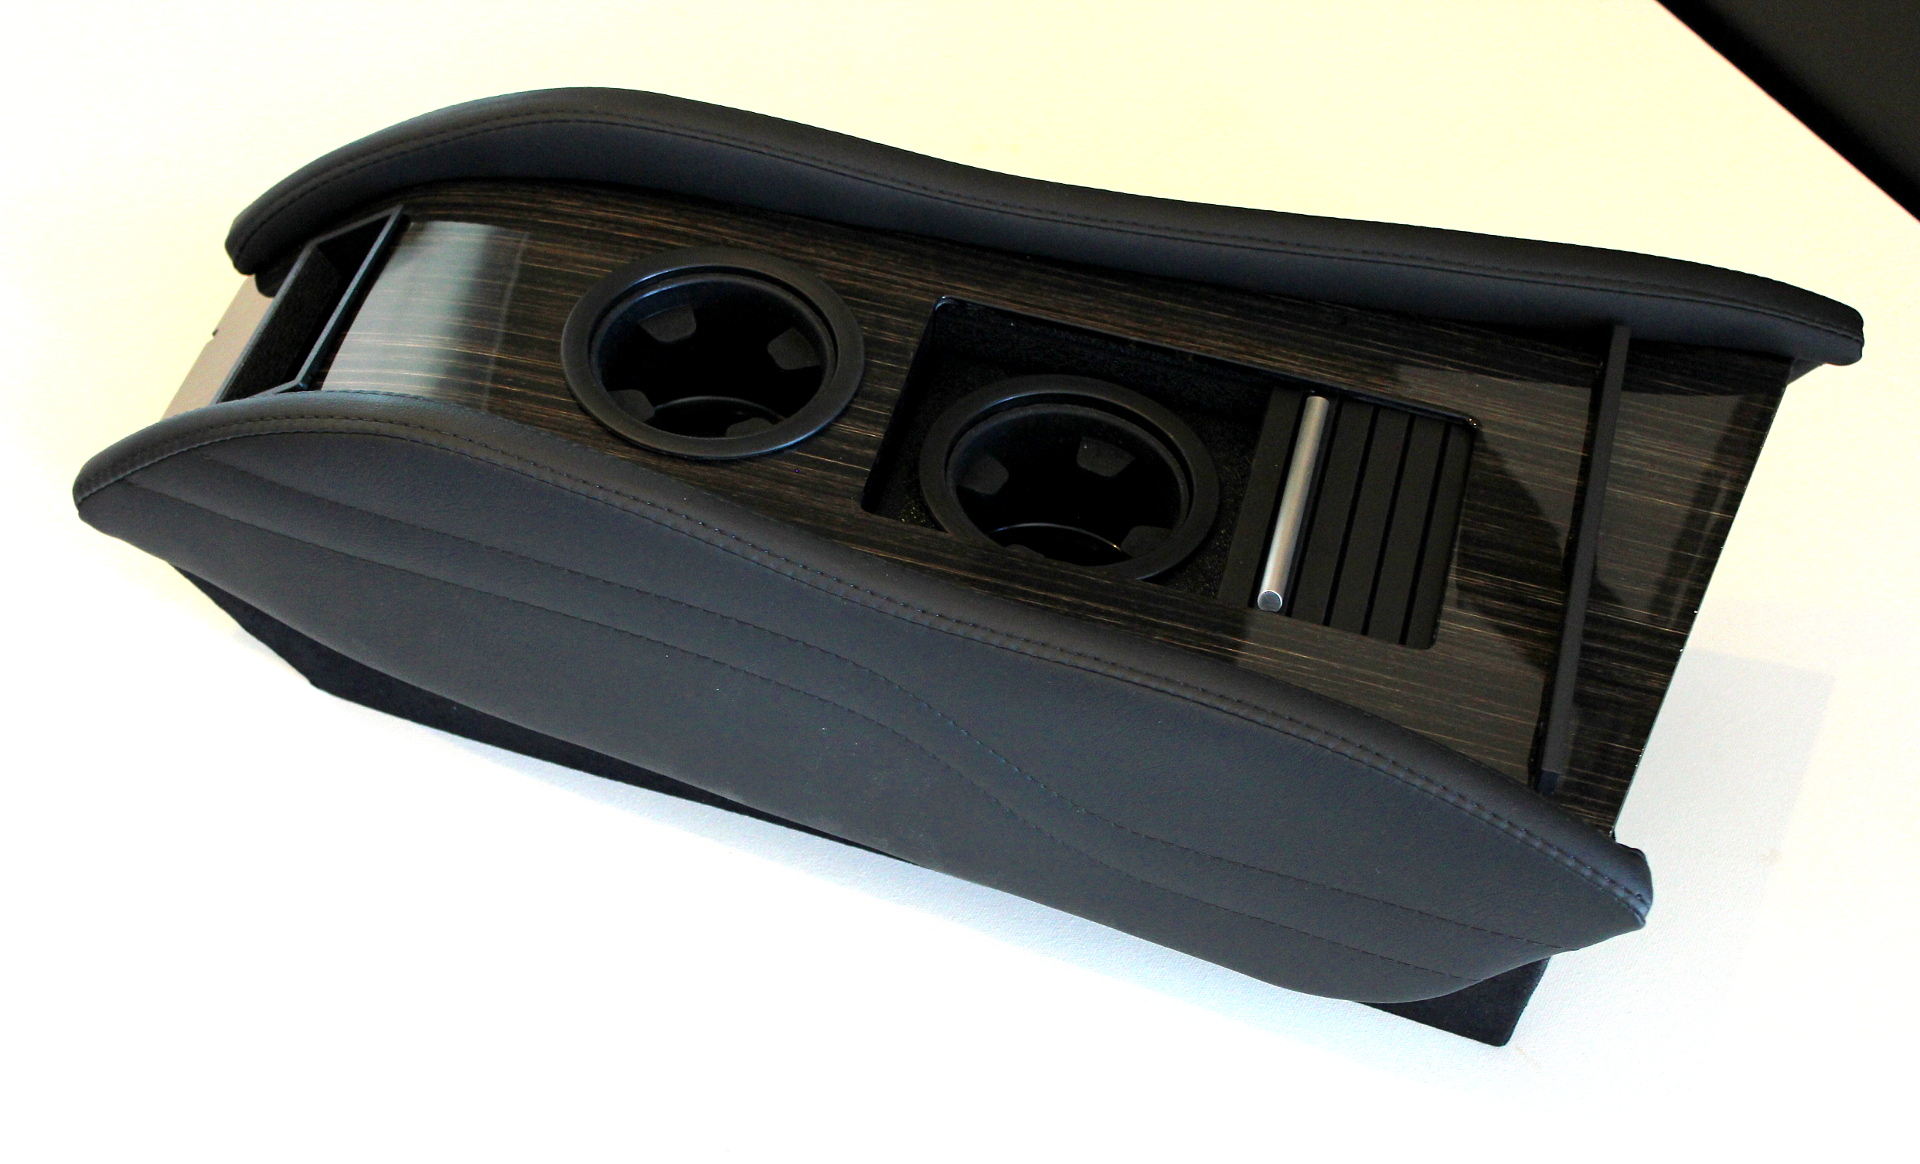 Tesla Model S Center Console Insert (CCI) with X2